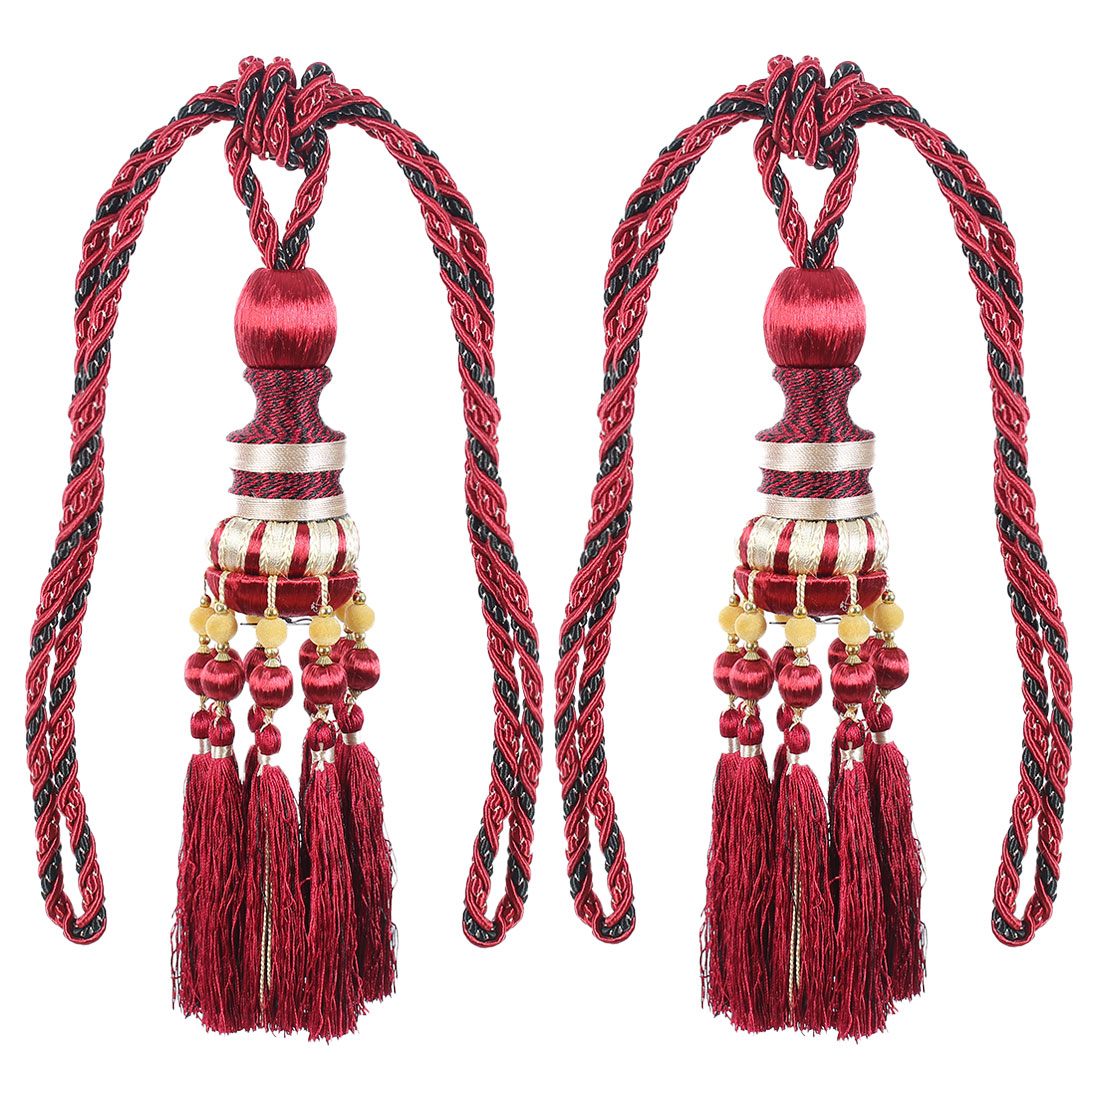 2Pcs Beaded Window Curtain Tassel Fringe Tieback Tie Back Home Decor Red